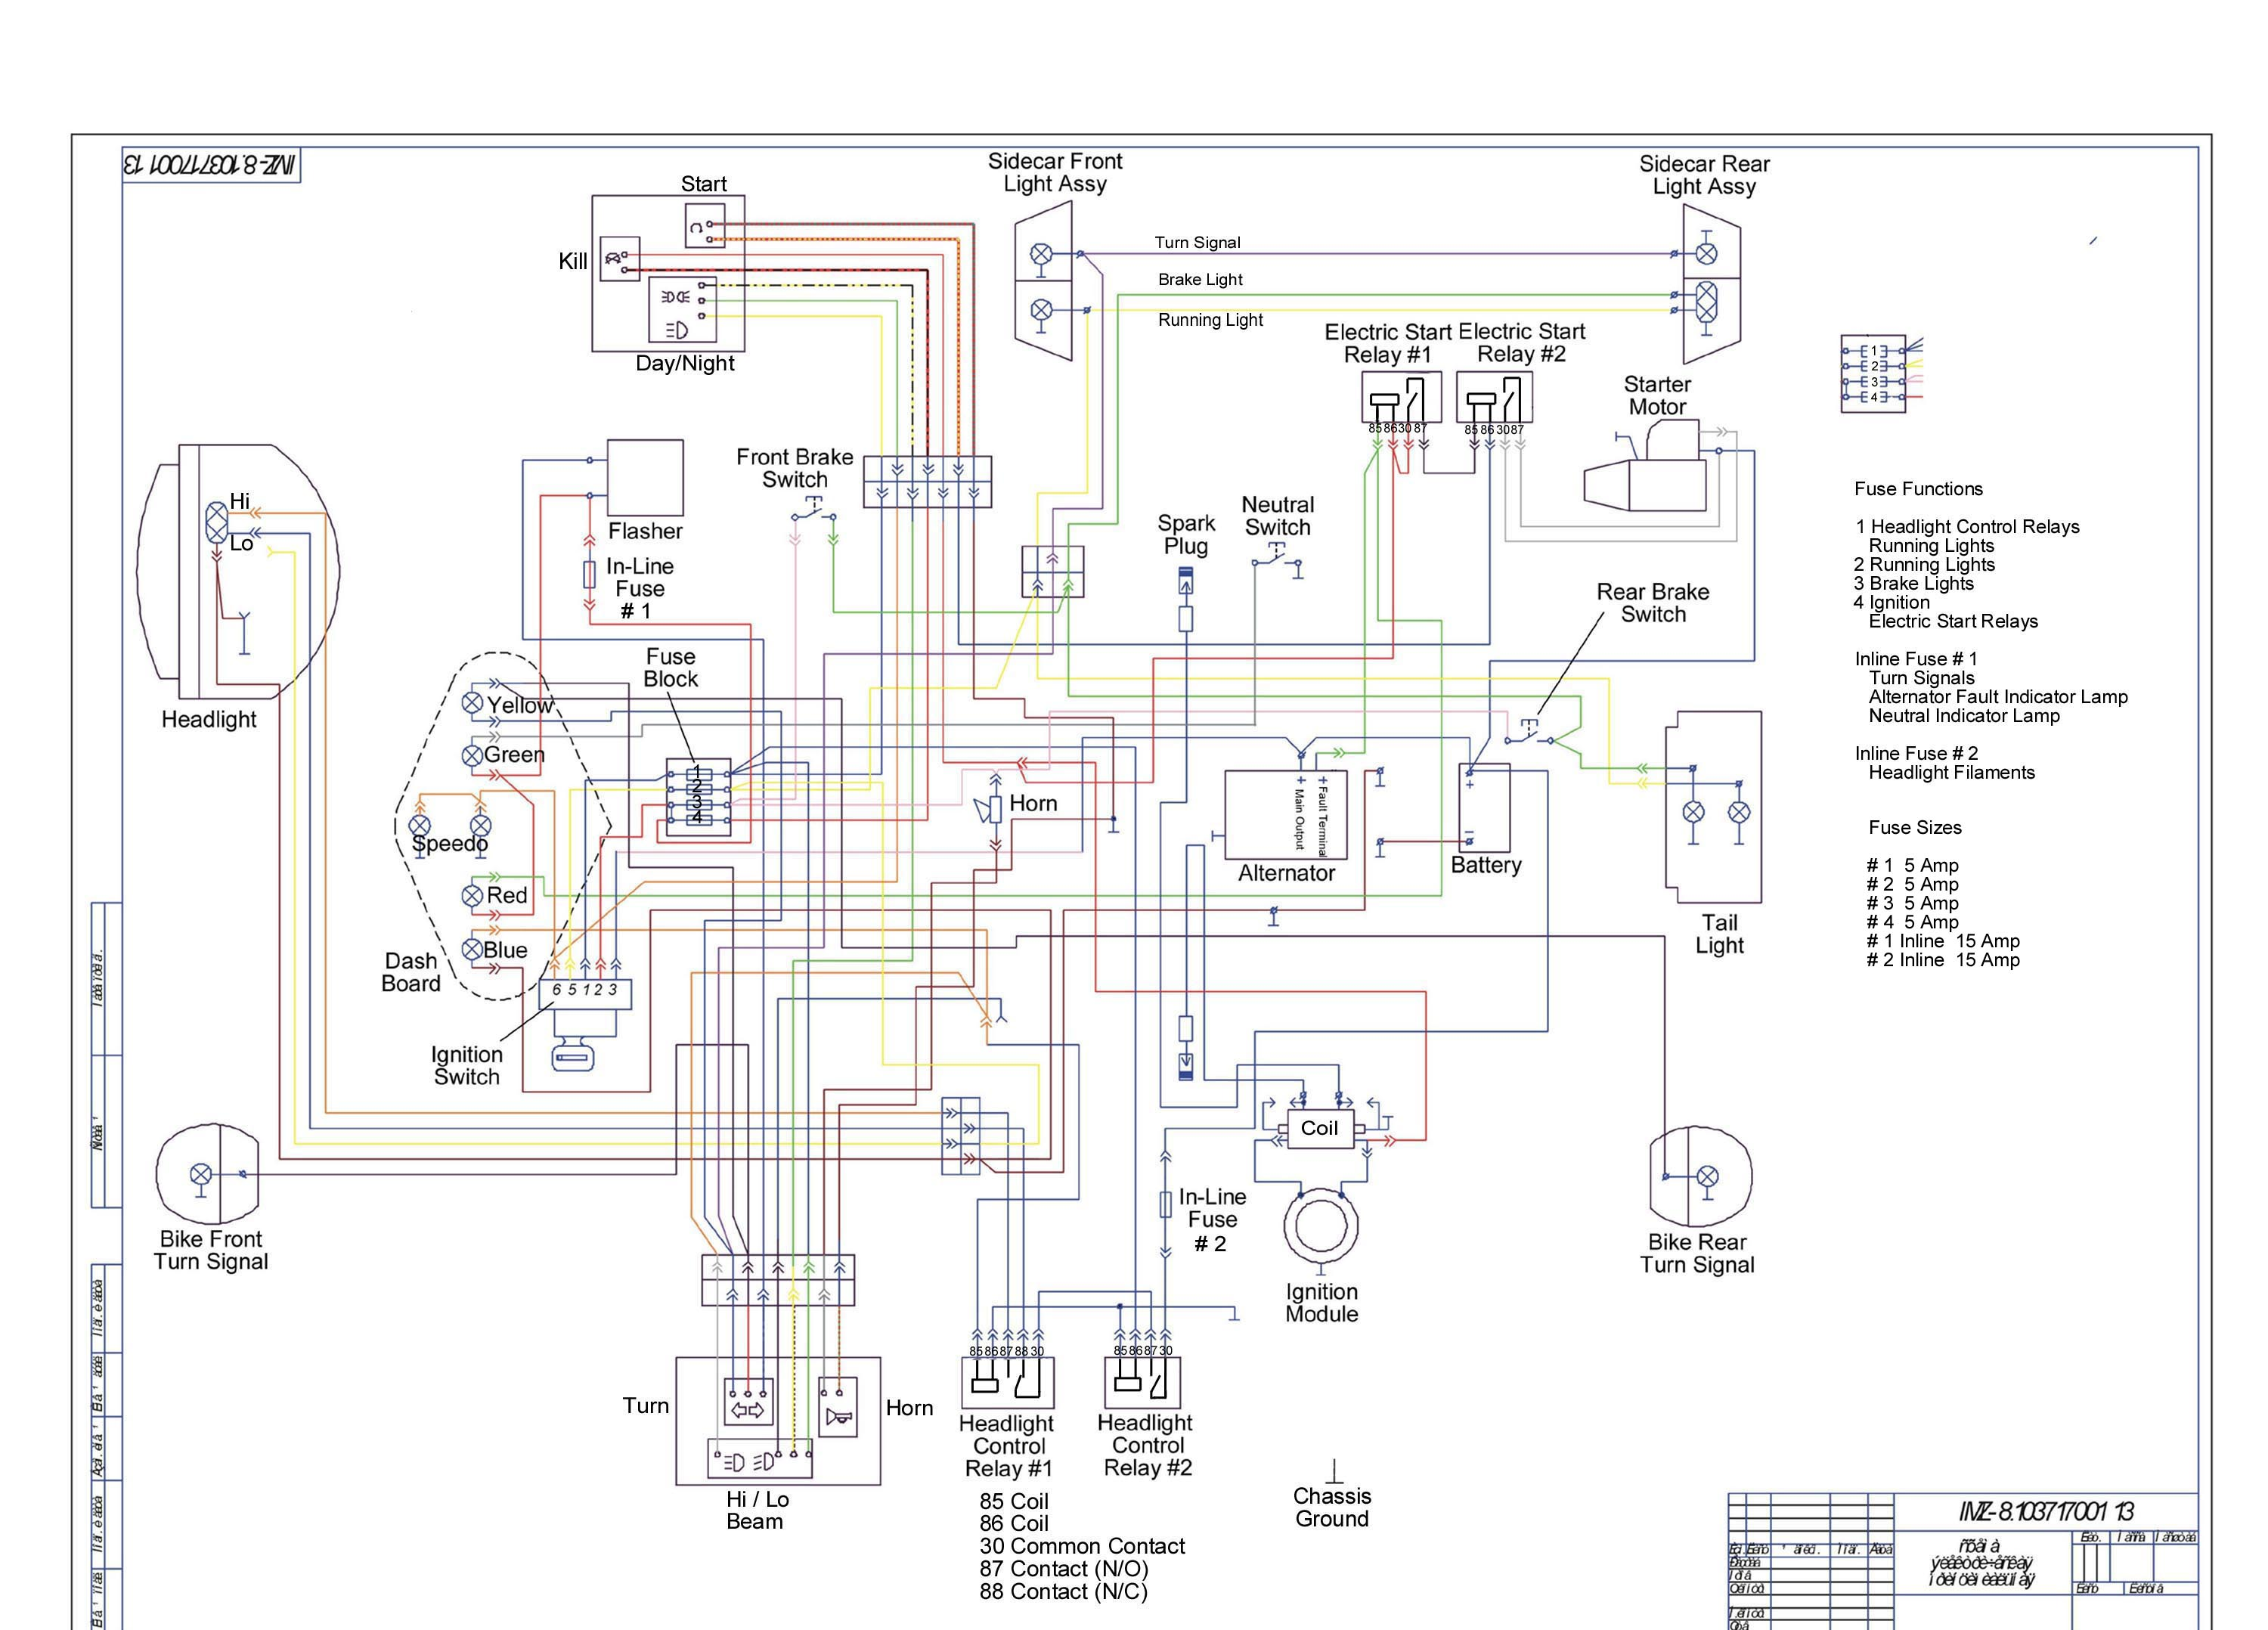 2004 Chevy Aveo Electrical Wiring Diagram further 94 Jeep Cherokee Transmission Wiring Diagram in addition Suzuki Swift Timing Chain besides Craig Radio Wiring Diagram besides 1993 Ford Probe Stereo Wiring Diagram. on geo metro radio wiring diagram